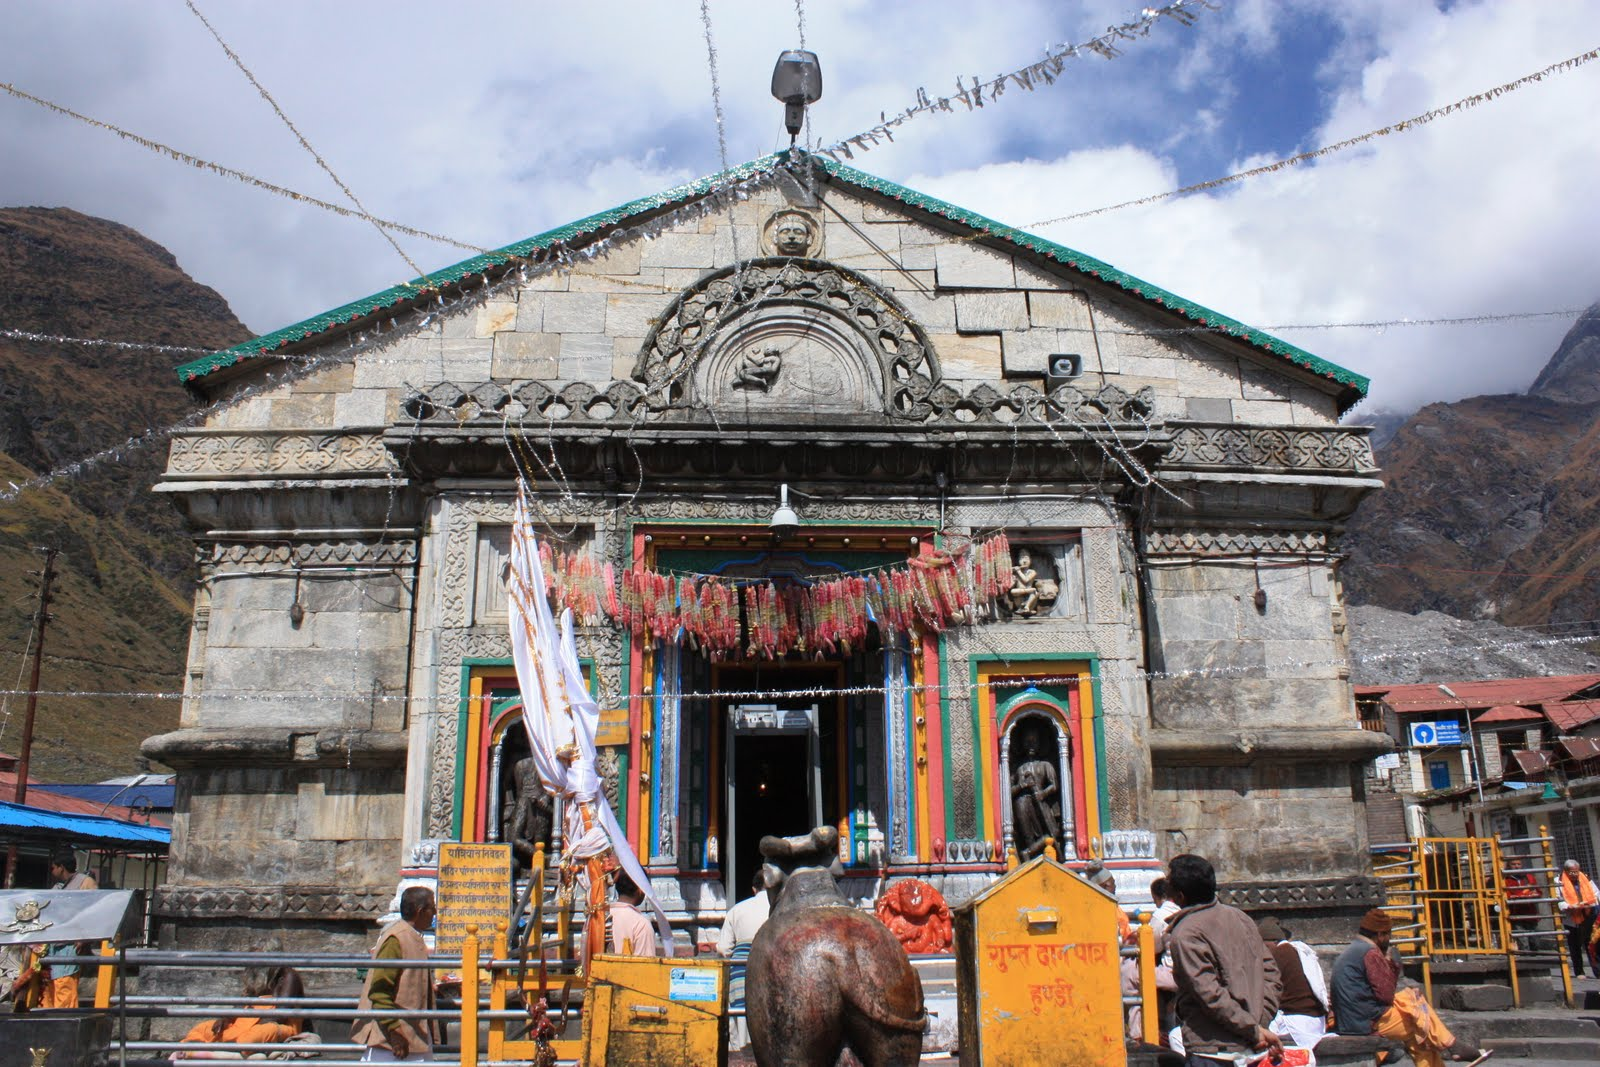 Shiv Mandir Live Darshan http://amritsartemples.in/2013/02/kedarnath-lord-shiva-temple-amazing-pictures-images-photos/kedarnath-uttarakhand-pictures-photos-images/